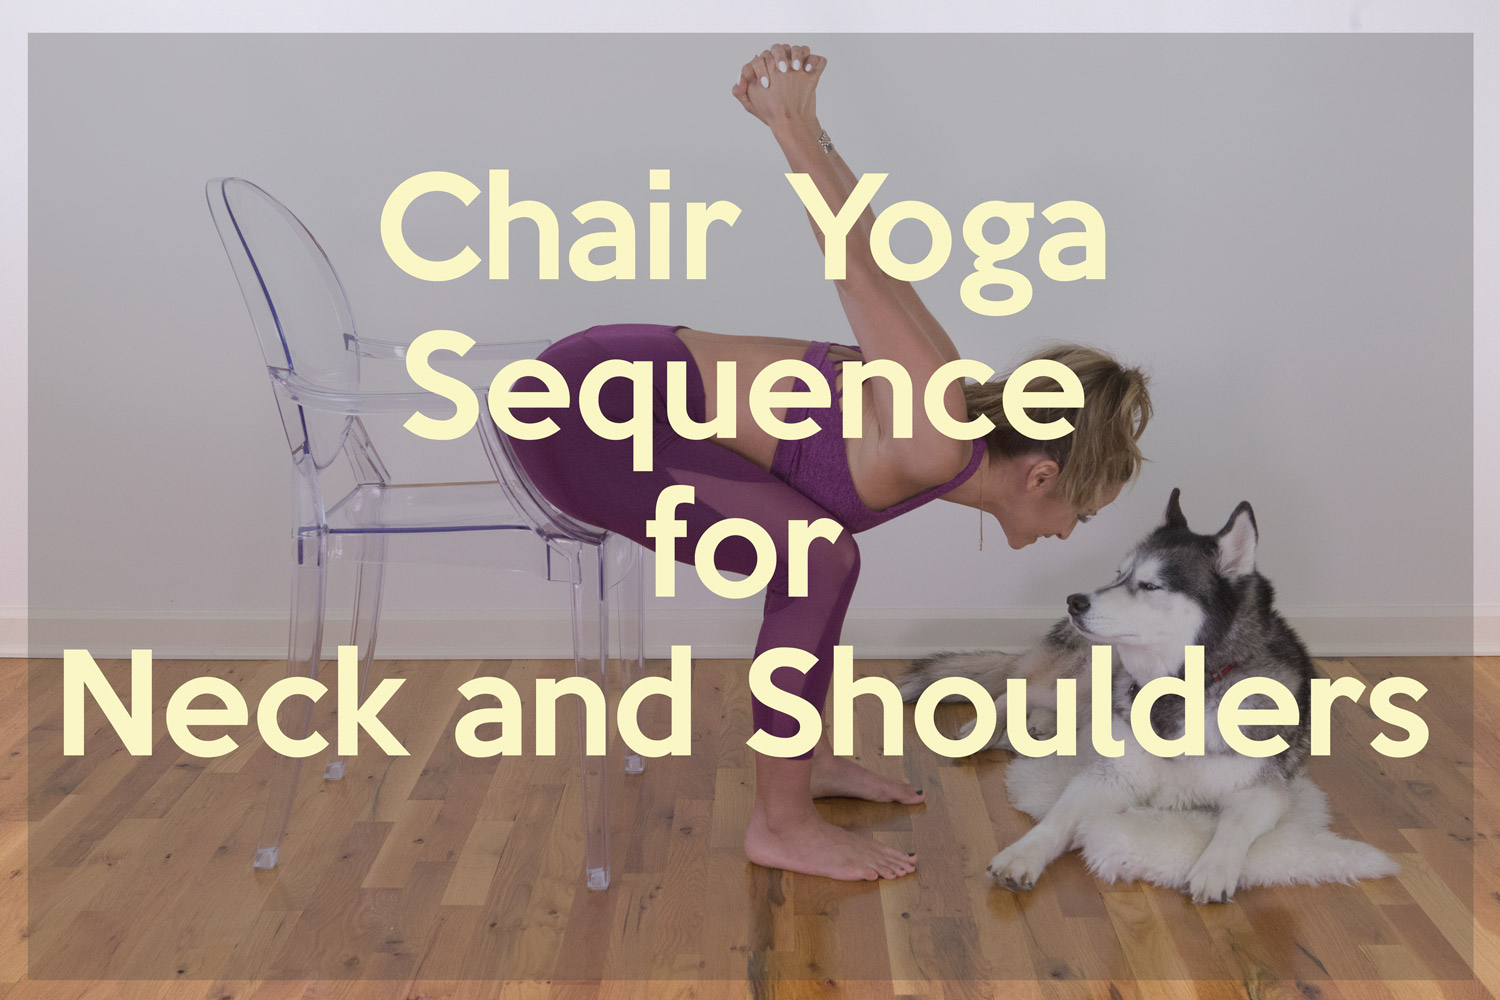 Chair Yoga Sequence for Neck and Shoulders  YOGABYCANDACE